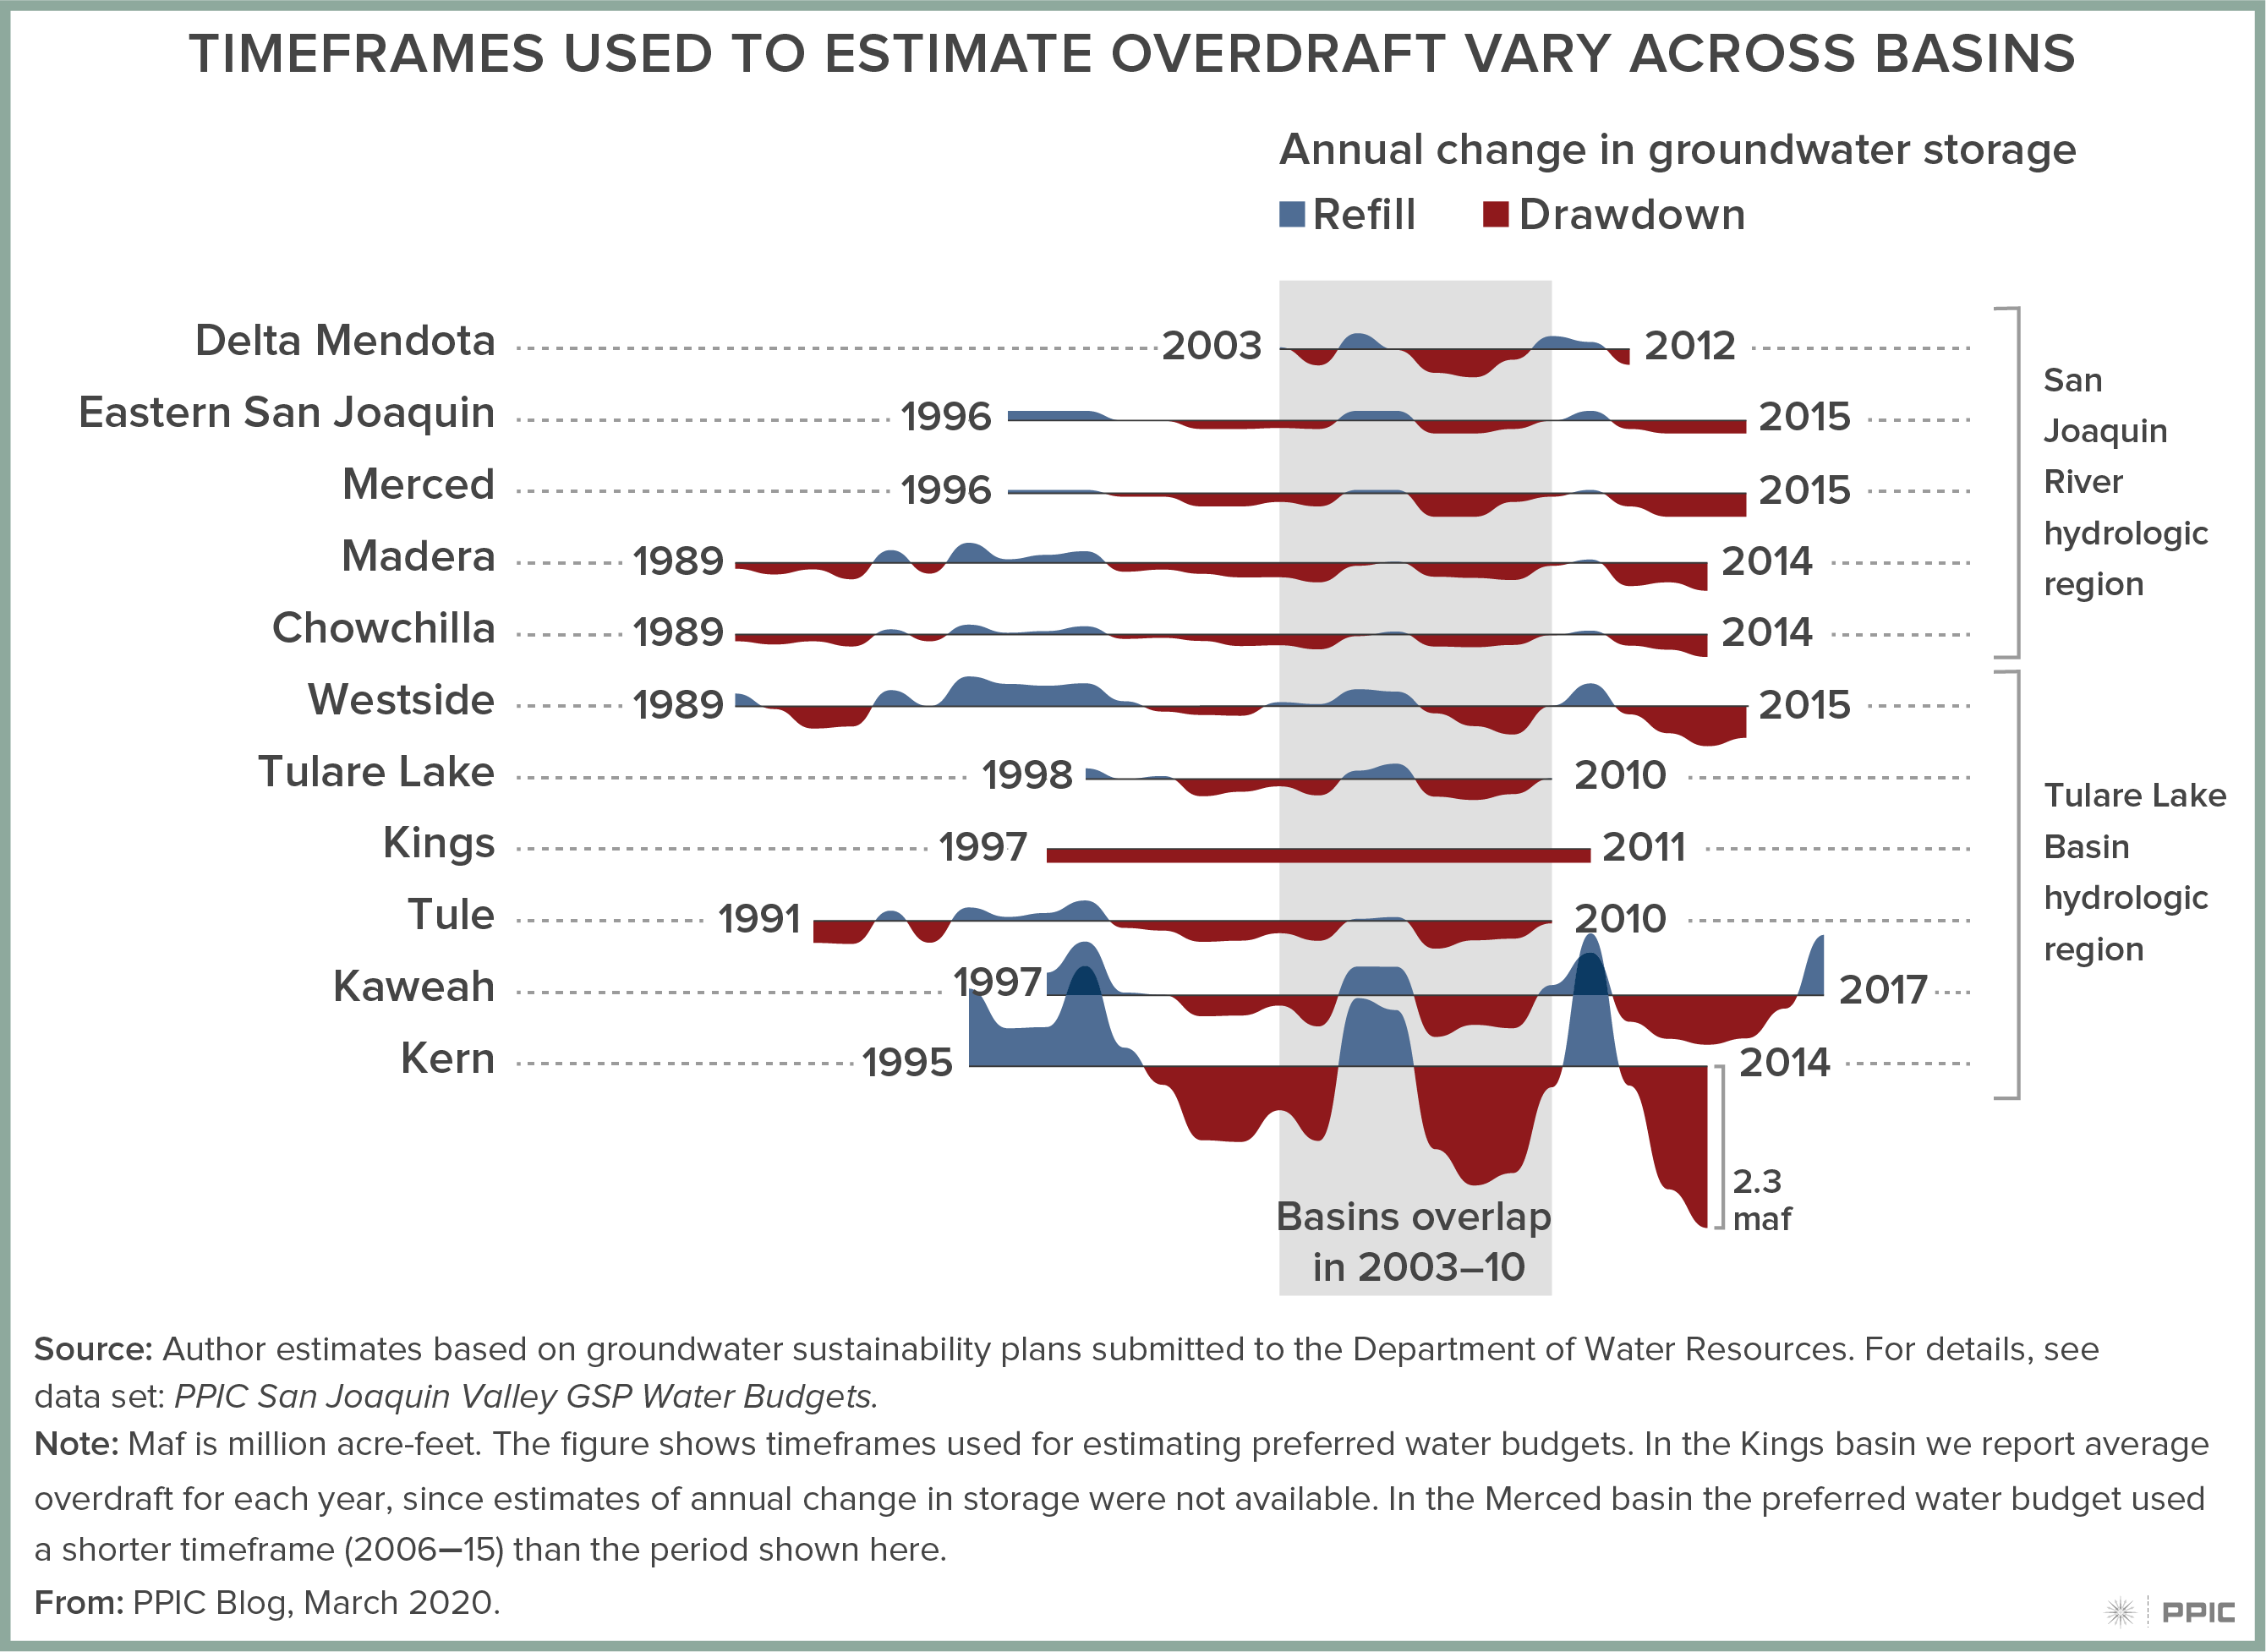 figure - Timeframes Used to Estimate Overdraft Vary across Basins